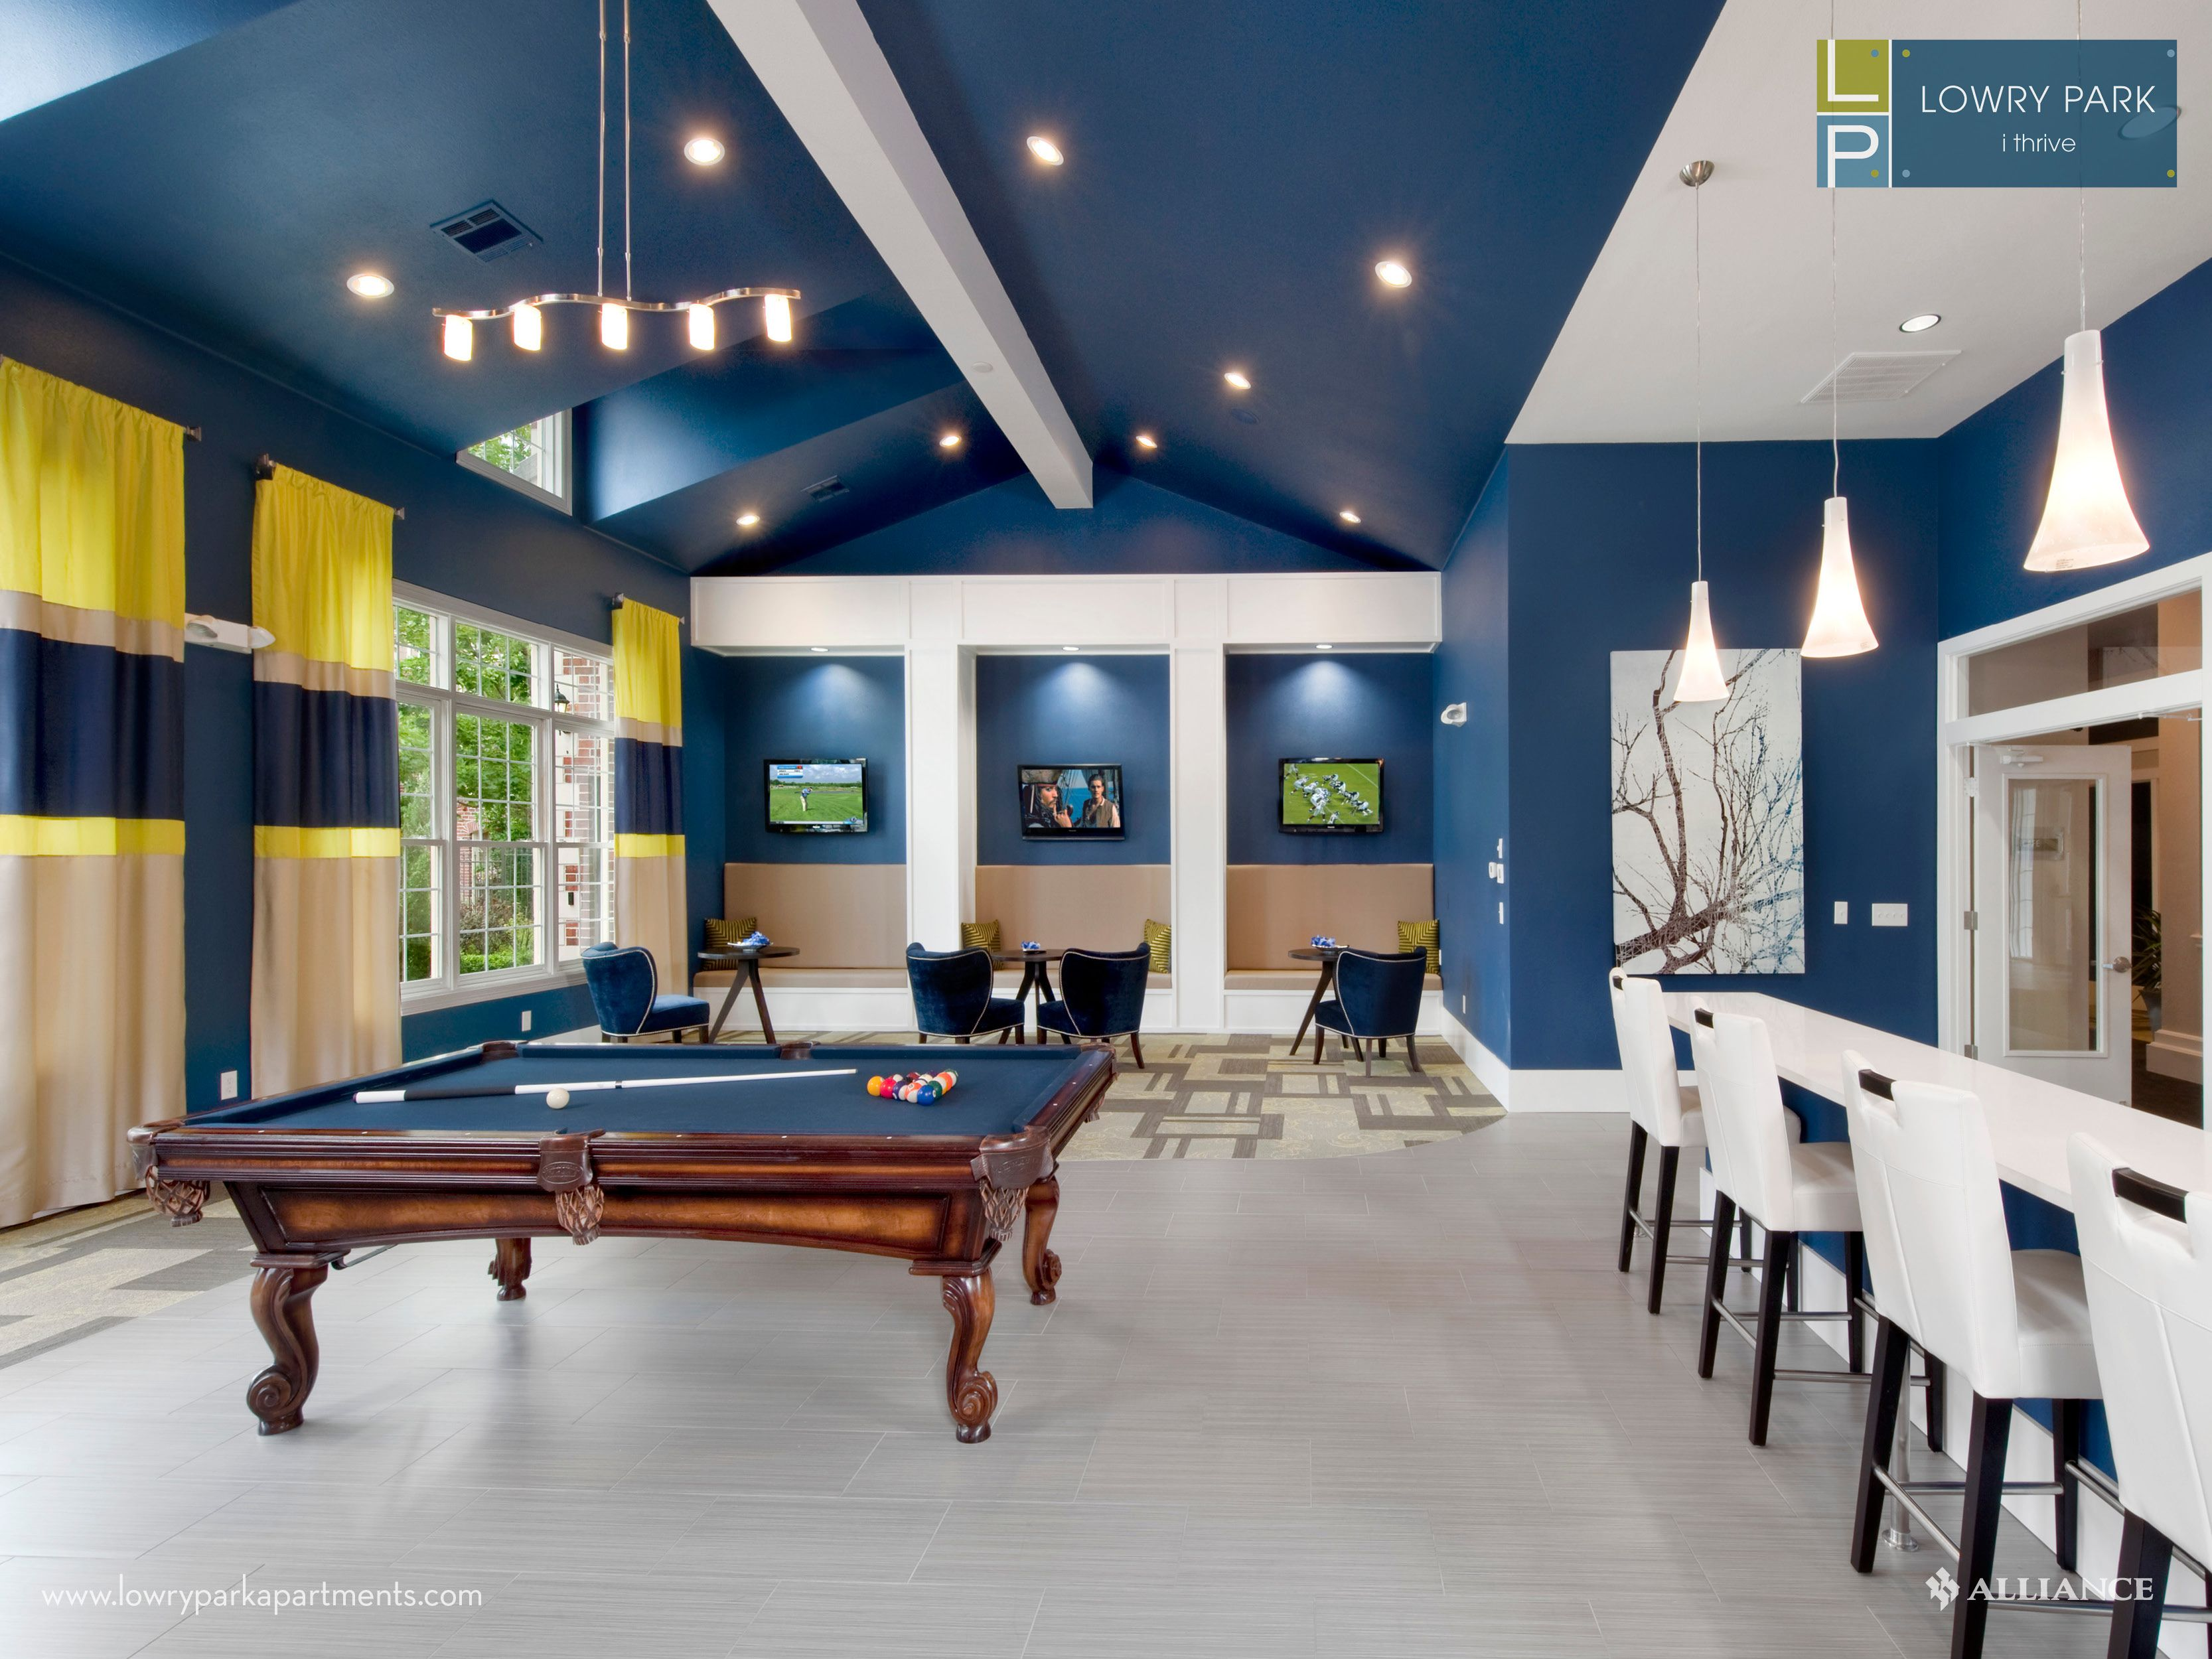 Clubhouse with billiards table at Lowry Park Apartments in